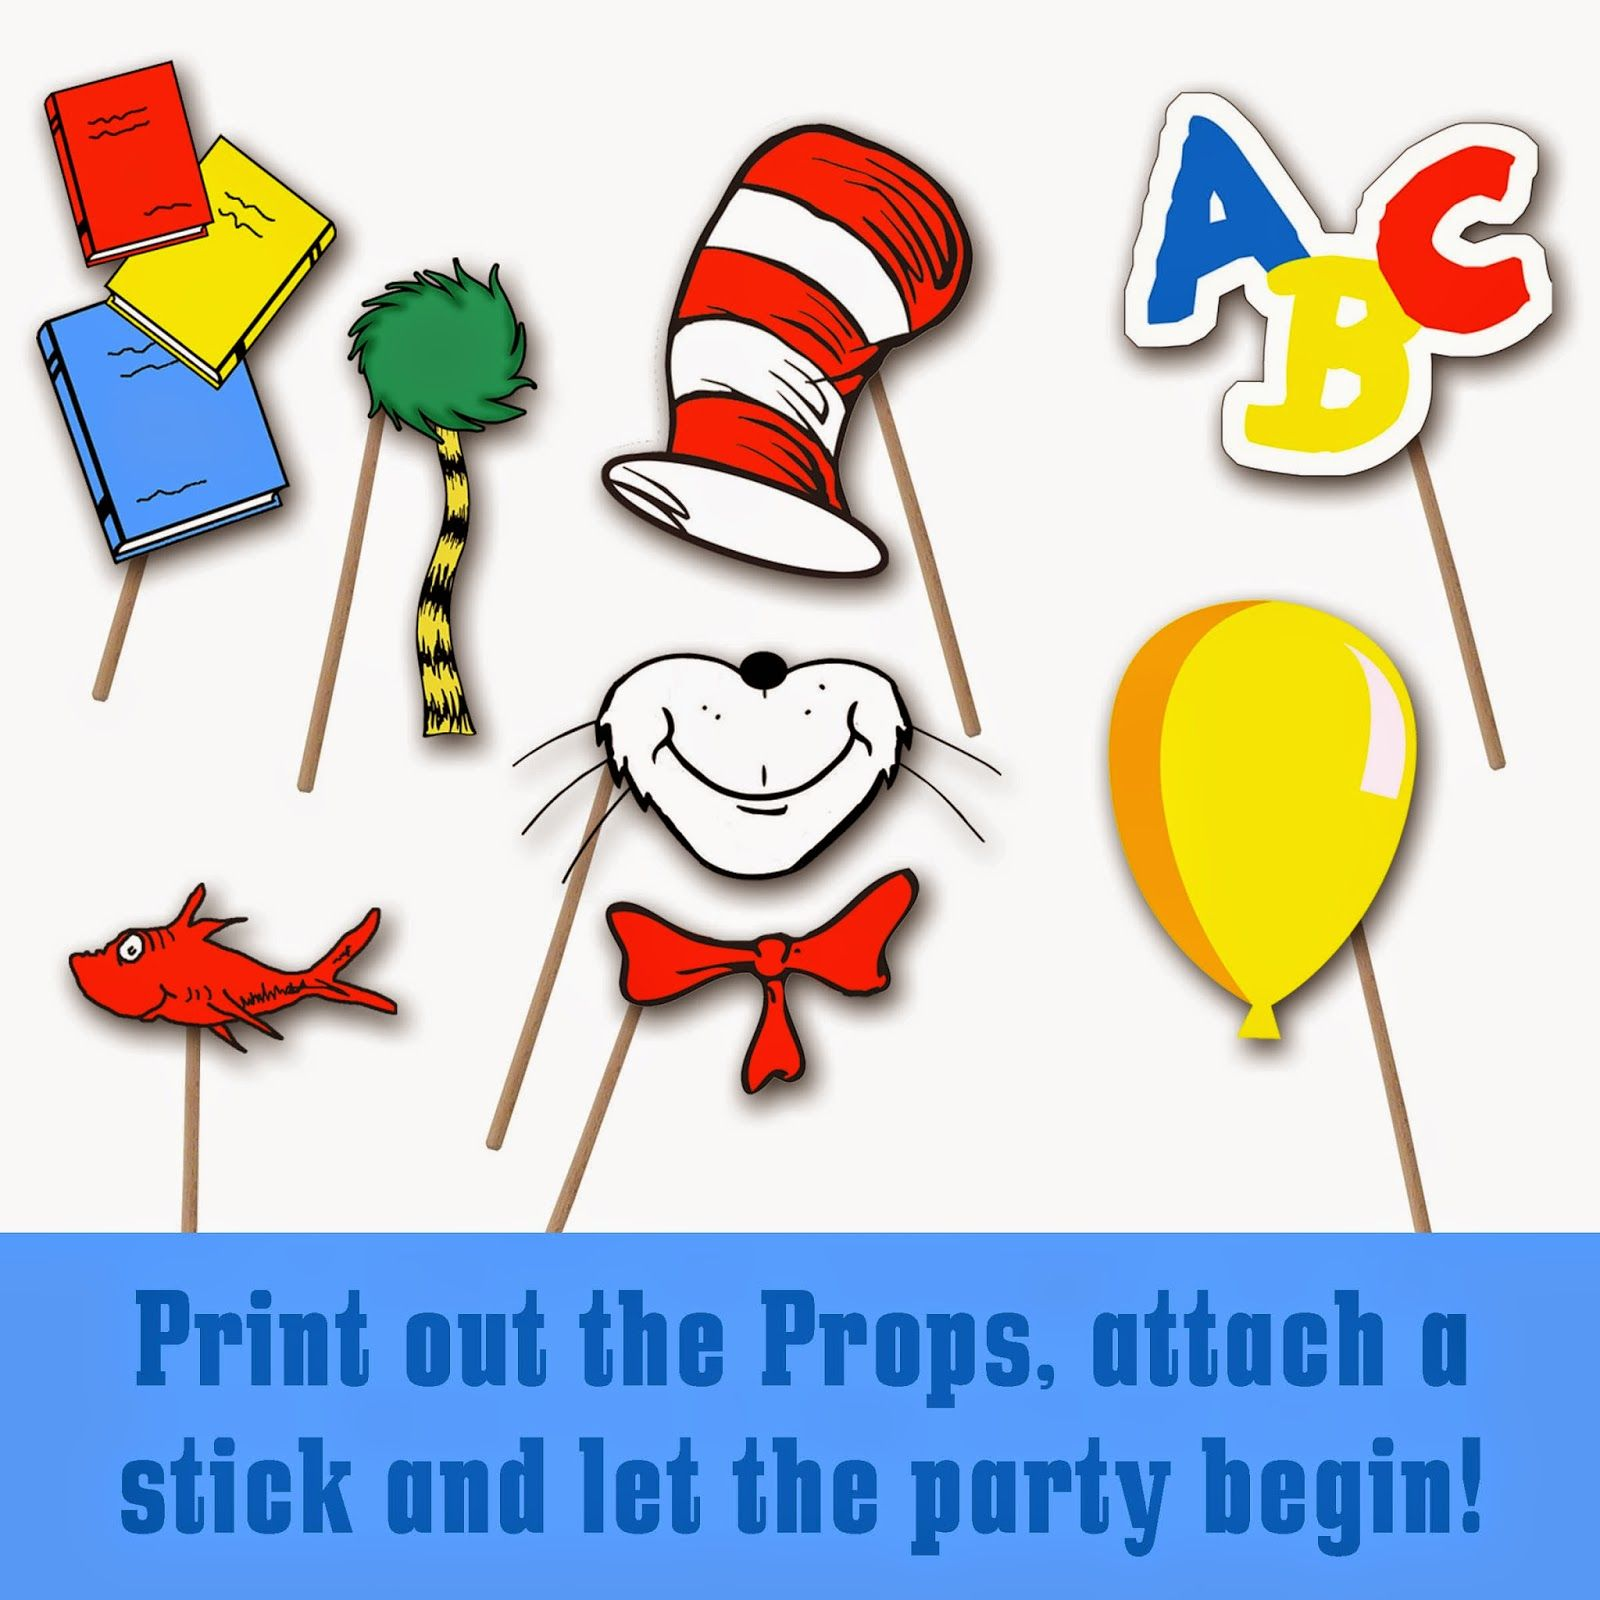 Dr. Seuss Photo Booth Printable Props | Kids | Pinterest ...